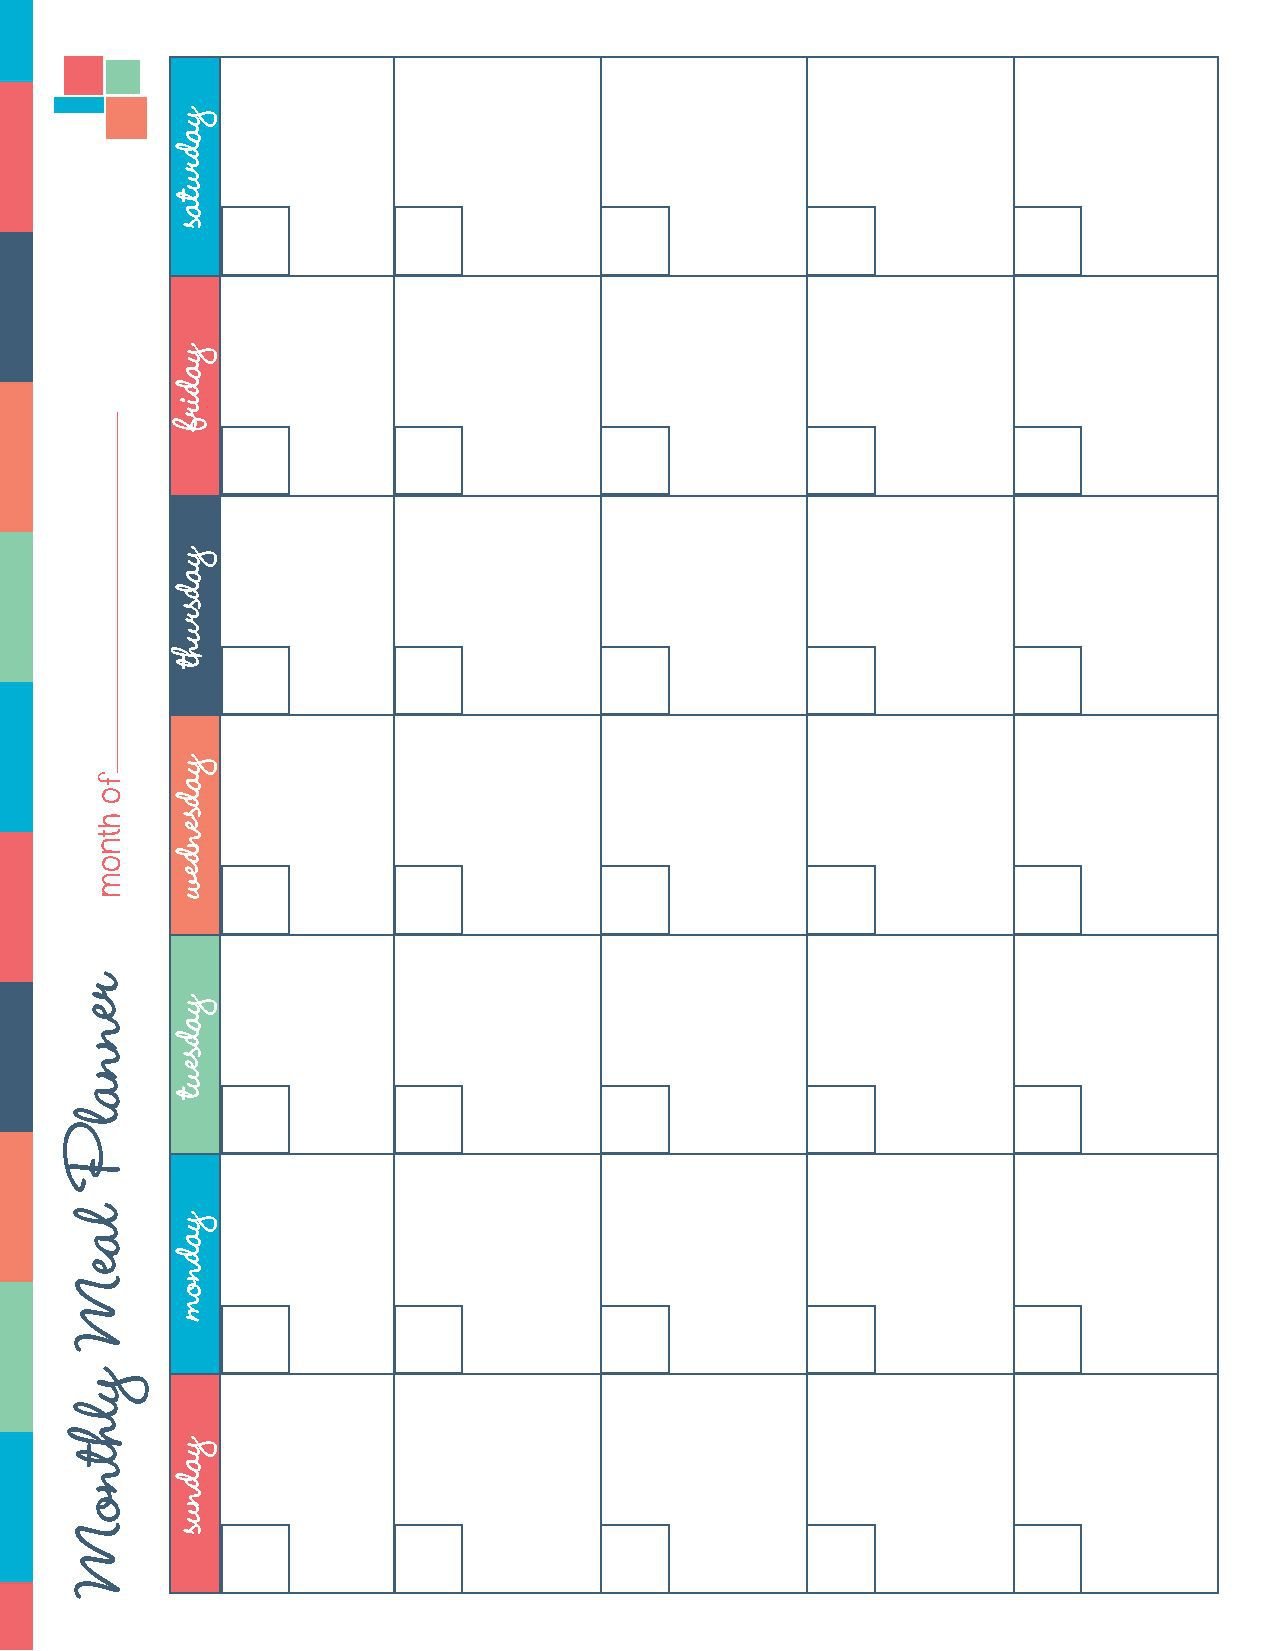 001 Breathtaking Meal Plan Calendar Template Highest Clarity  Excel Weekly 30 DayFull